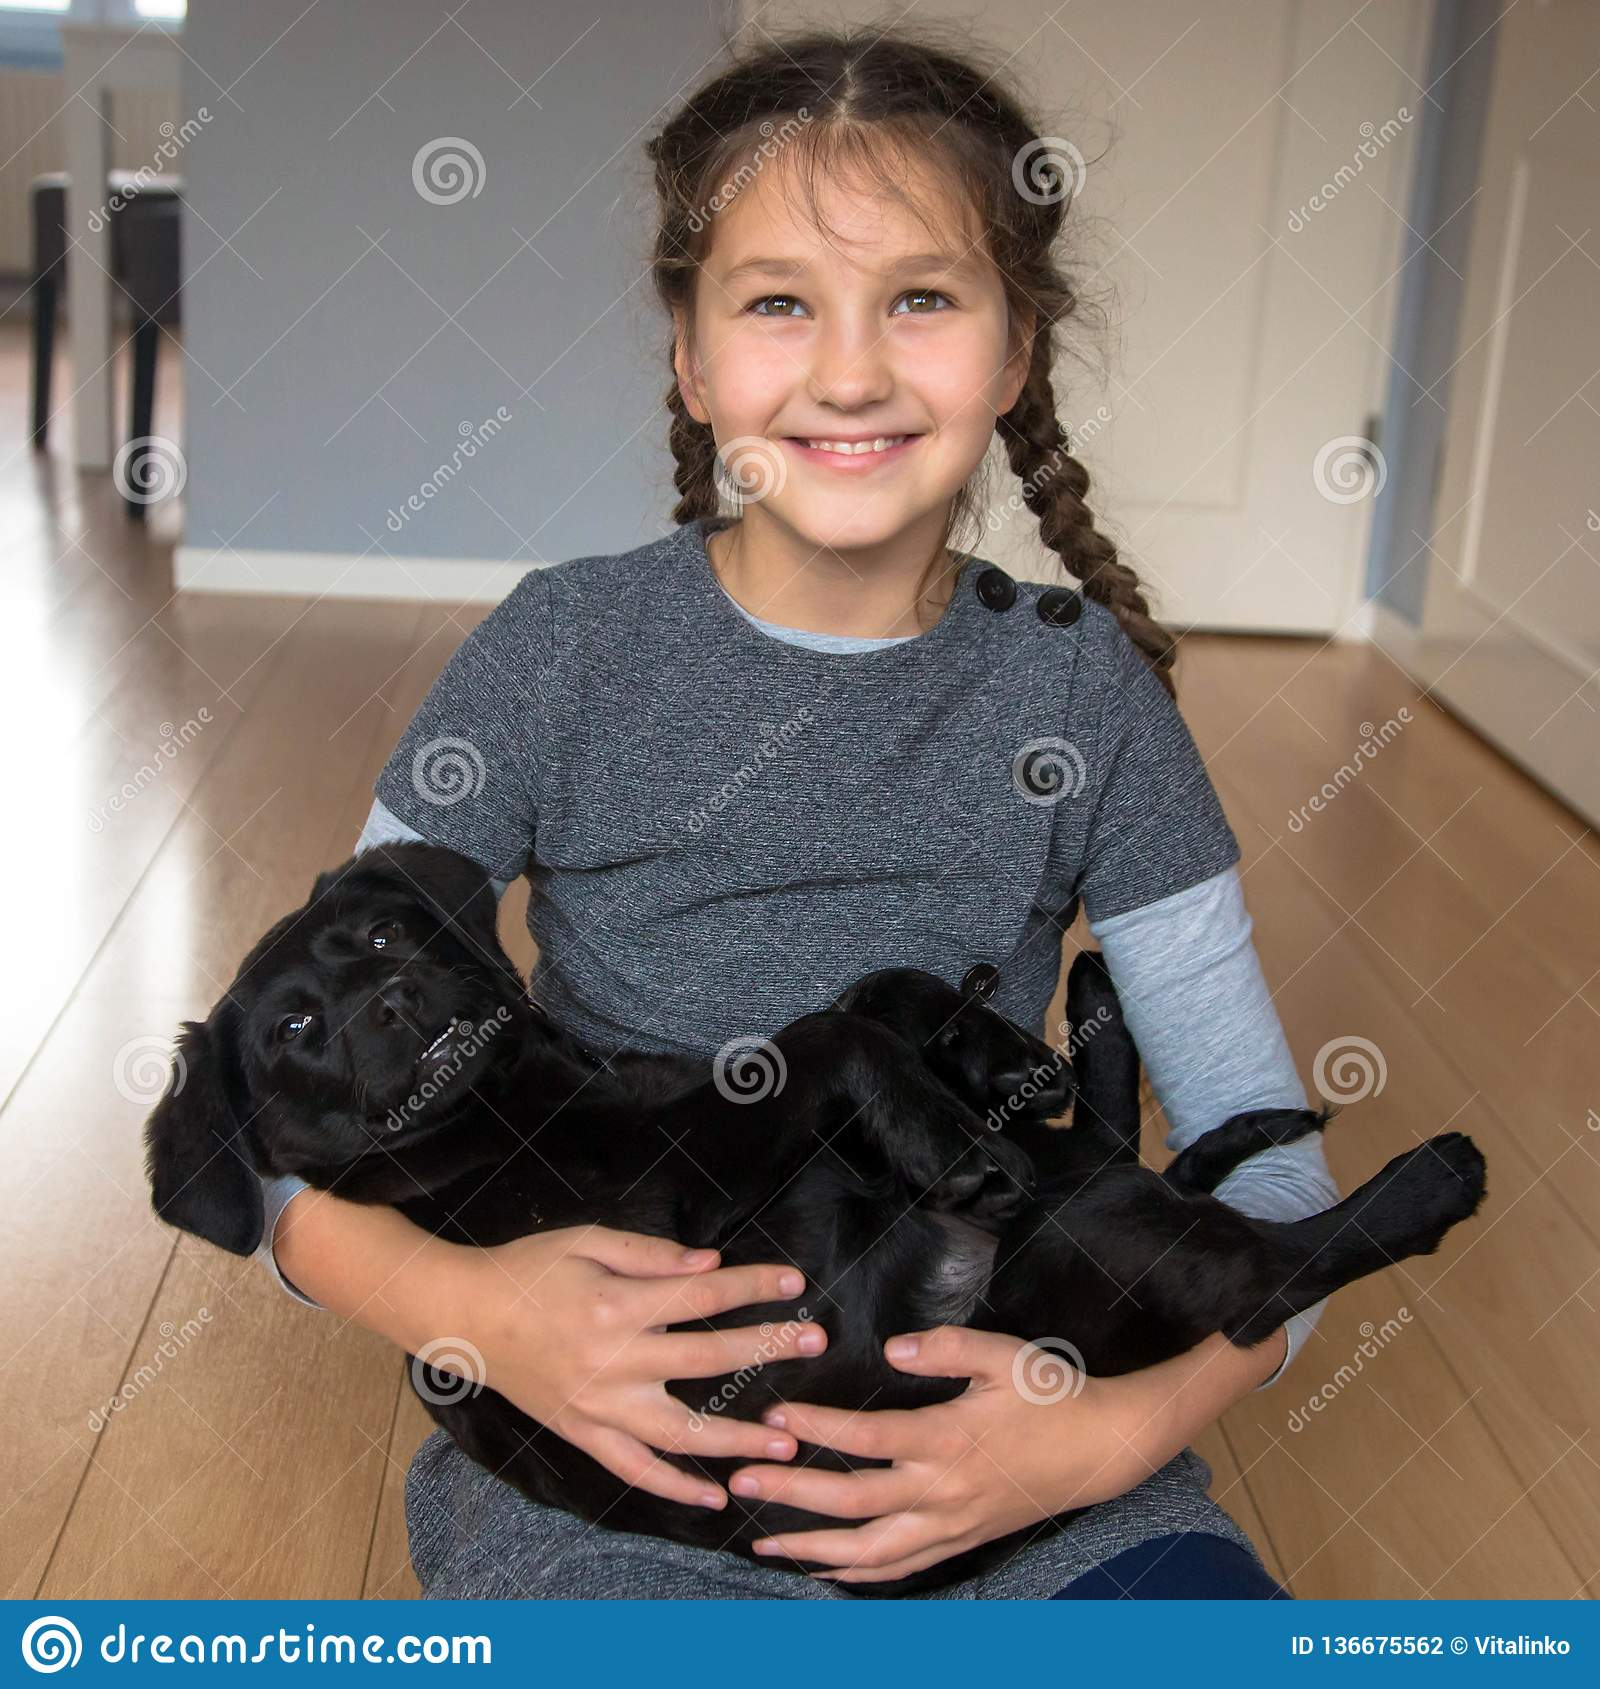 Love for animals concept. Pet and child